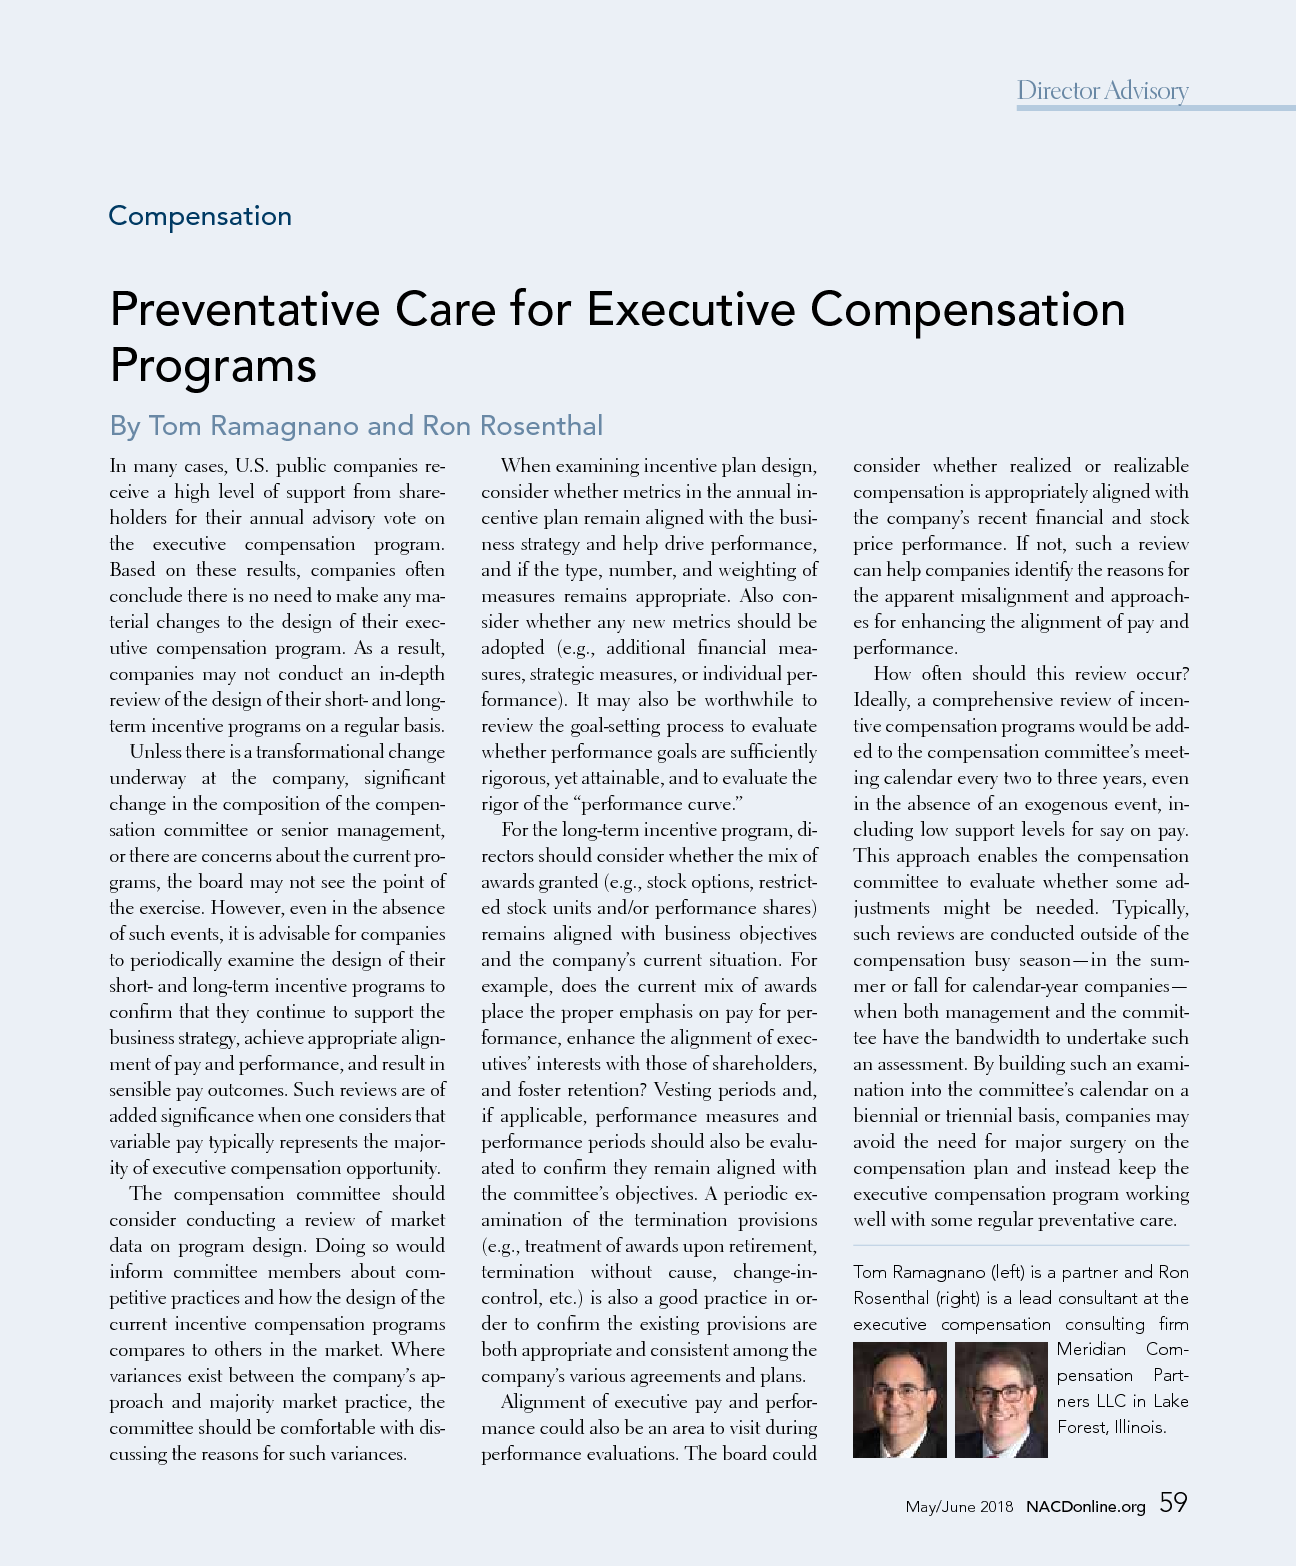 Preventative Care for Executive Compensation Programs (PDF)